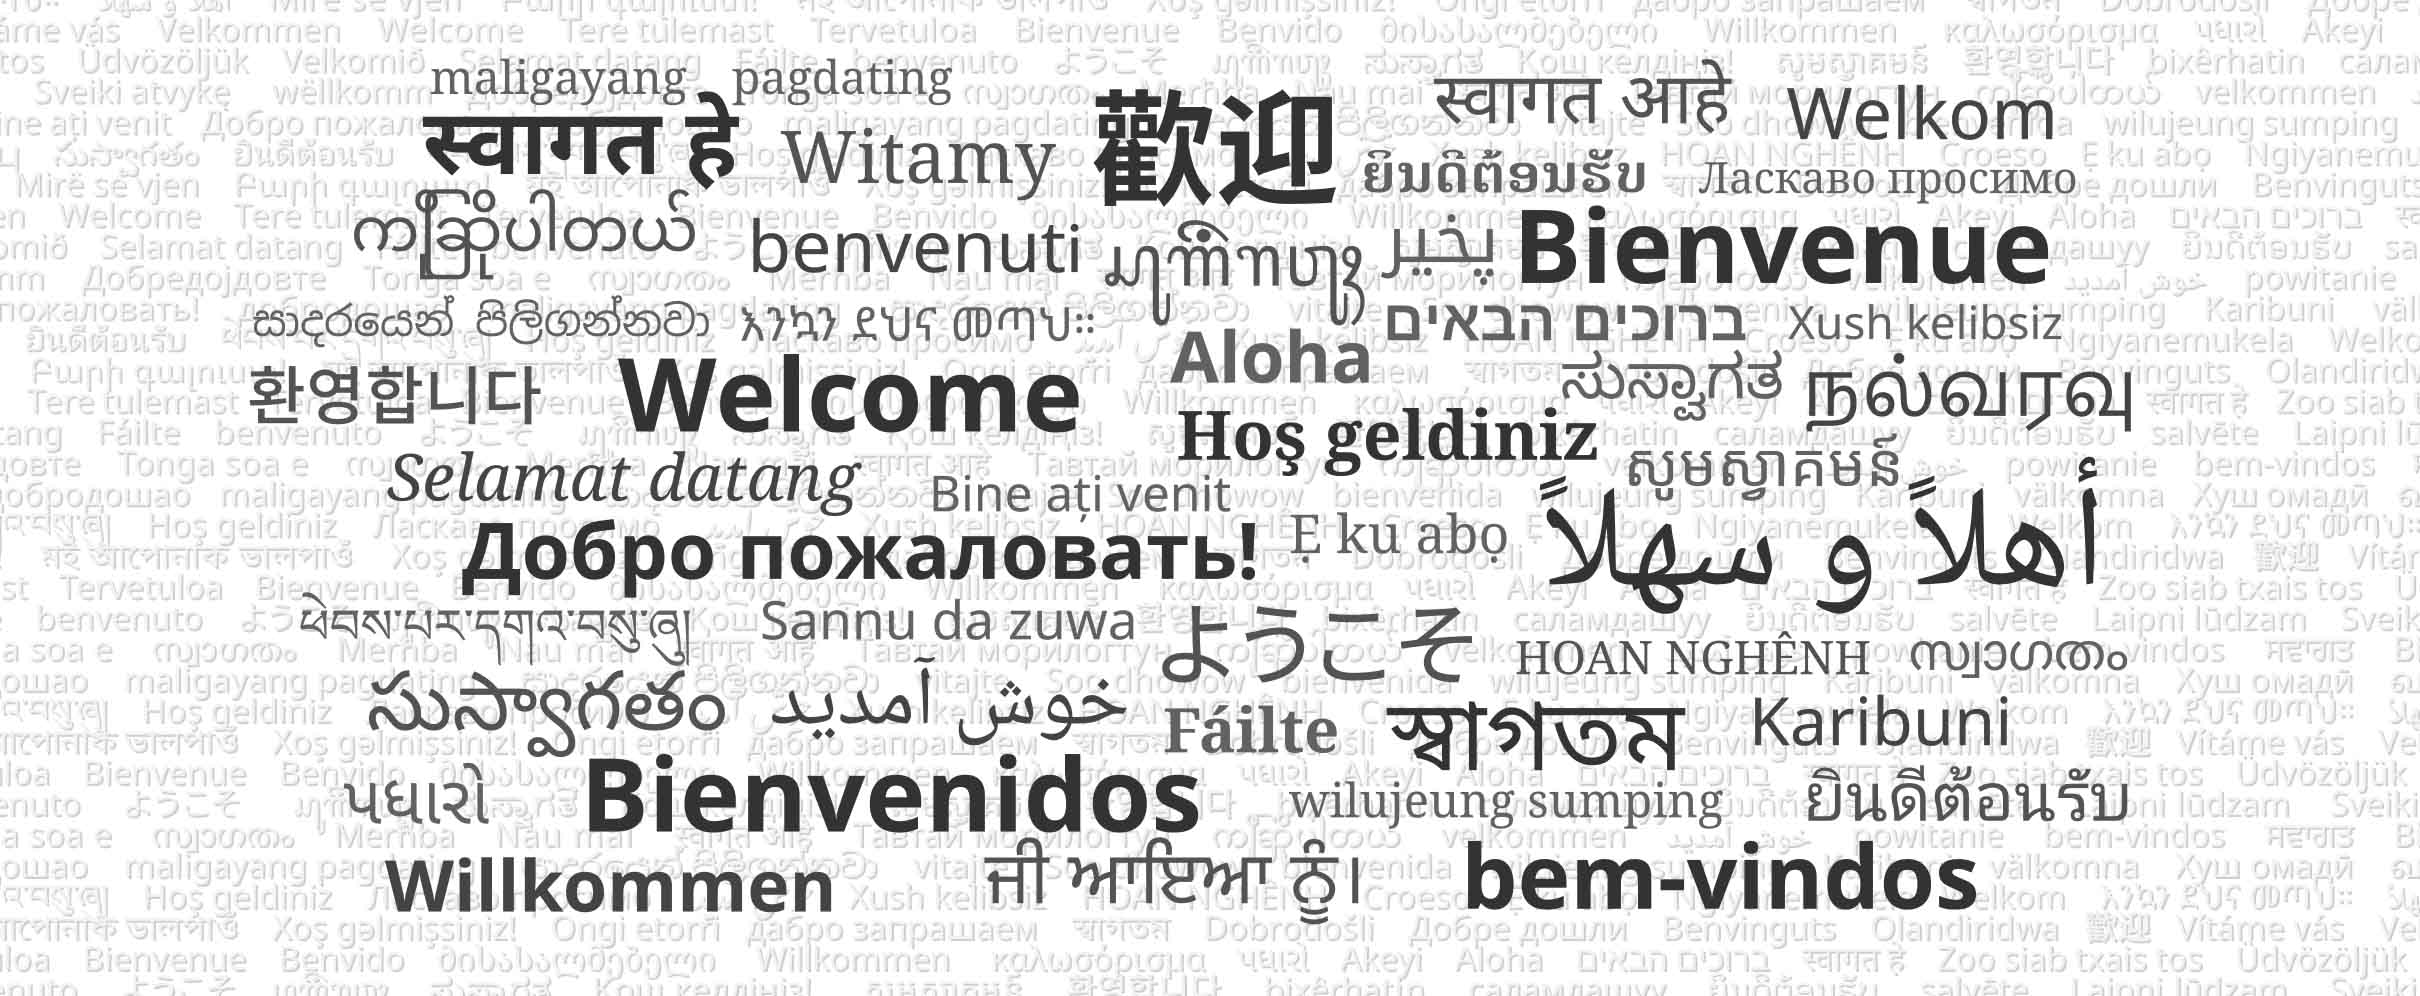 Black and white image showing the phrase 'Welcome' in several languages.